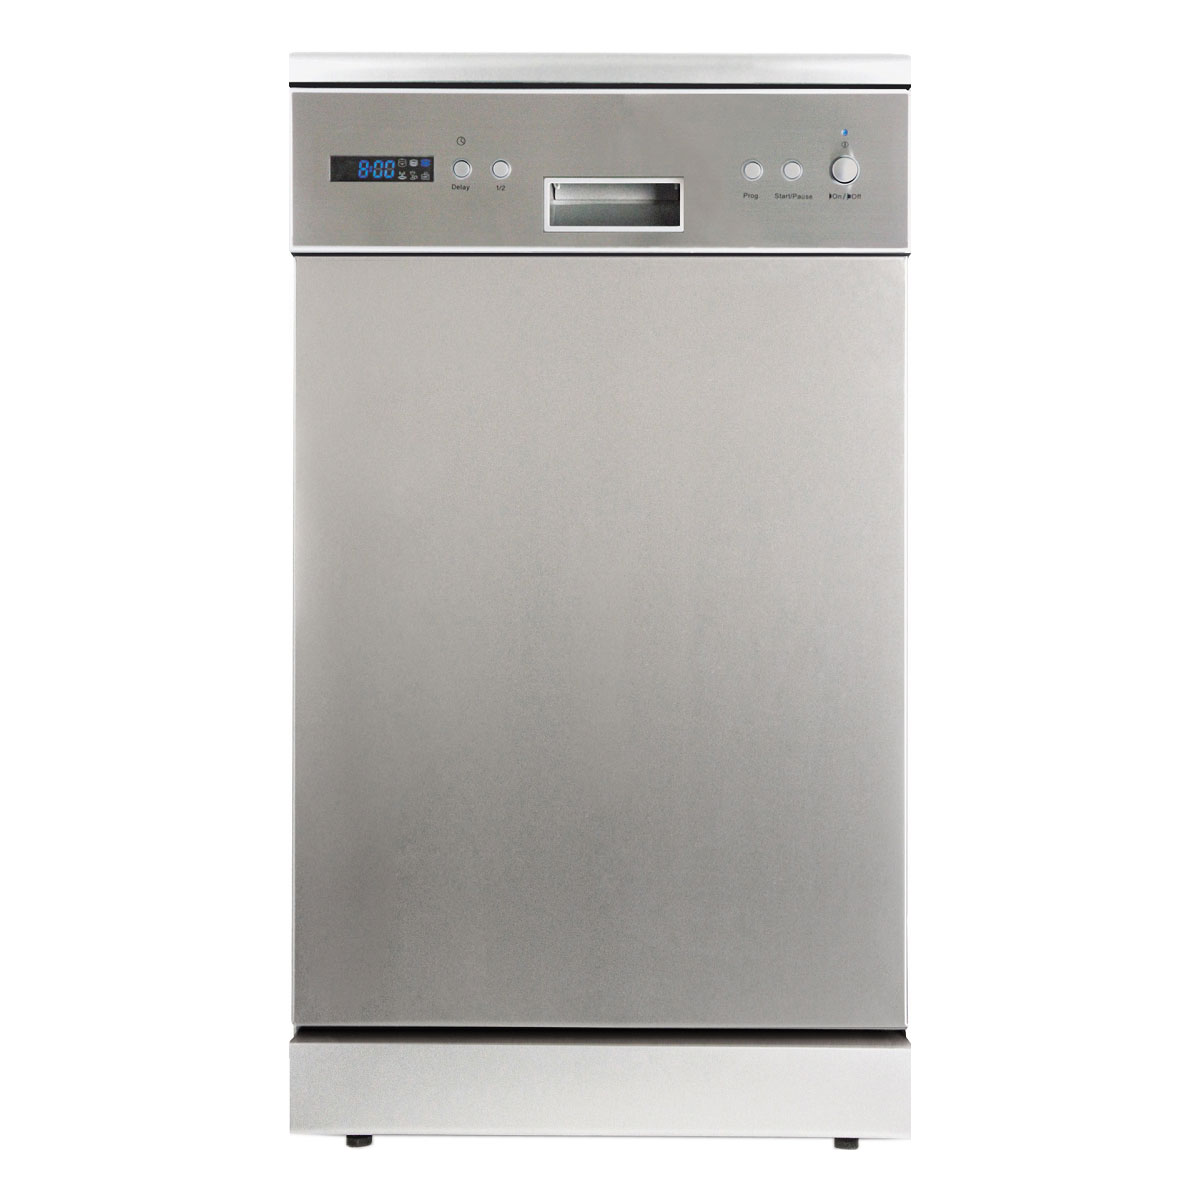 Delonghi DEDW45S Dishwasher